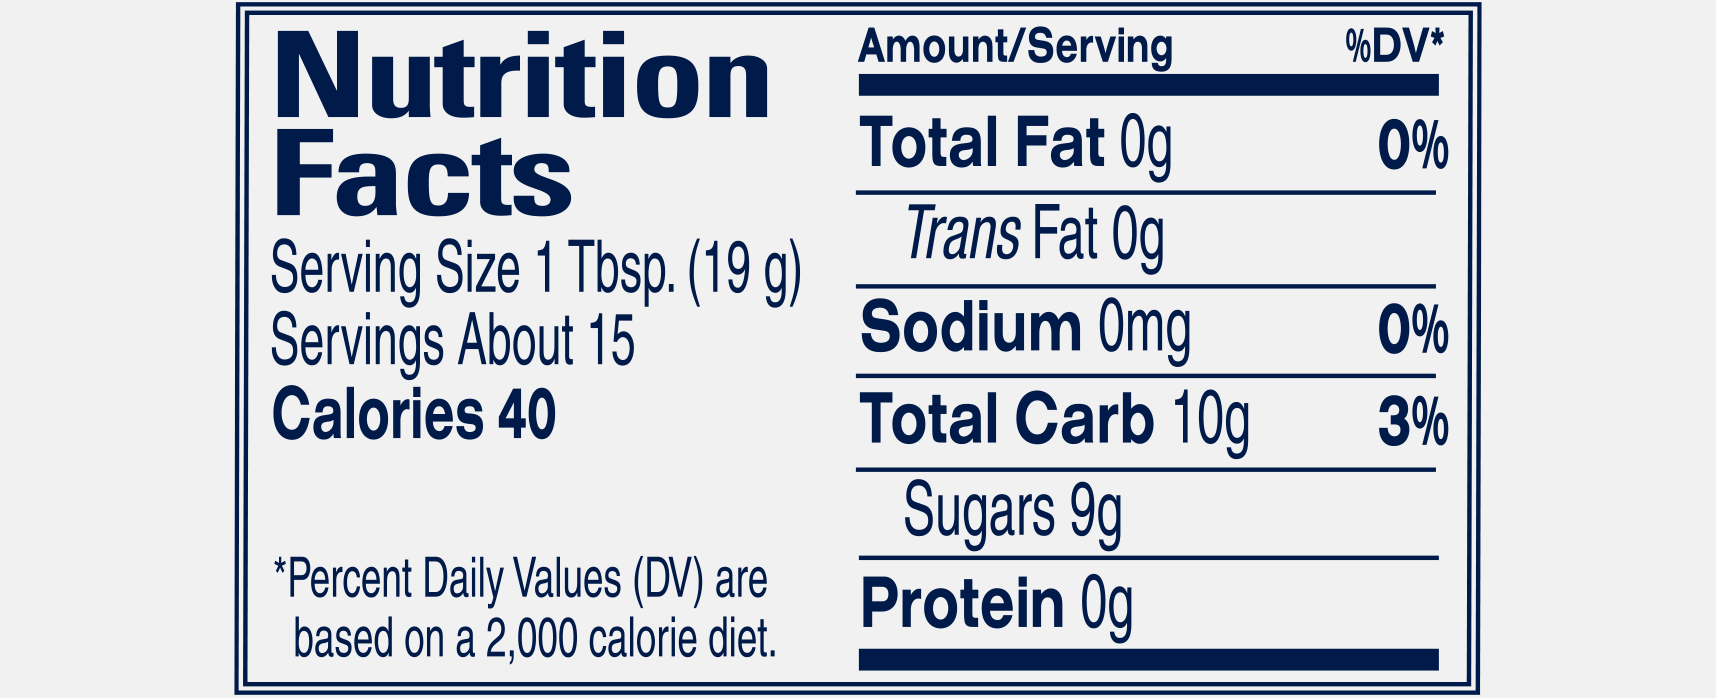 StDalfour_NutritionFacts_FourFruits.png